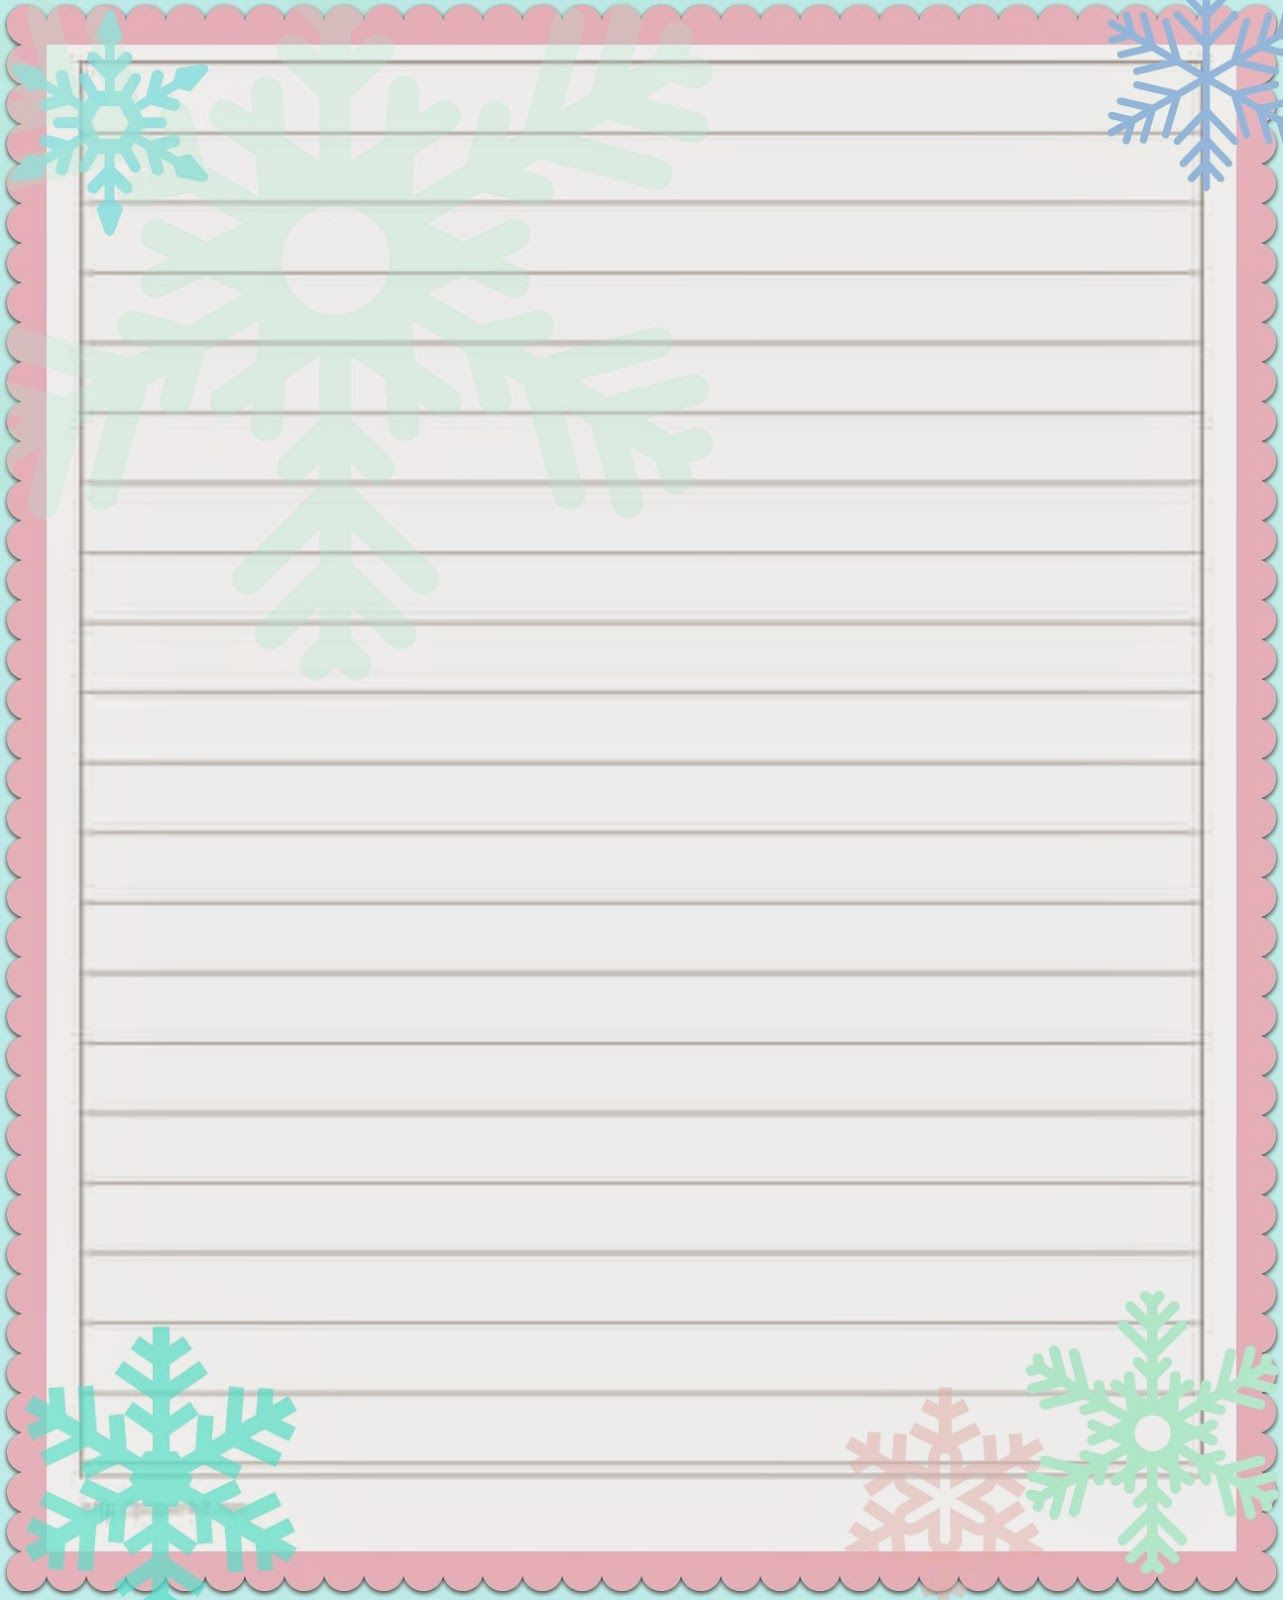 Pin By Linda Dugan On Lined Stationery